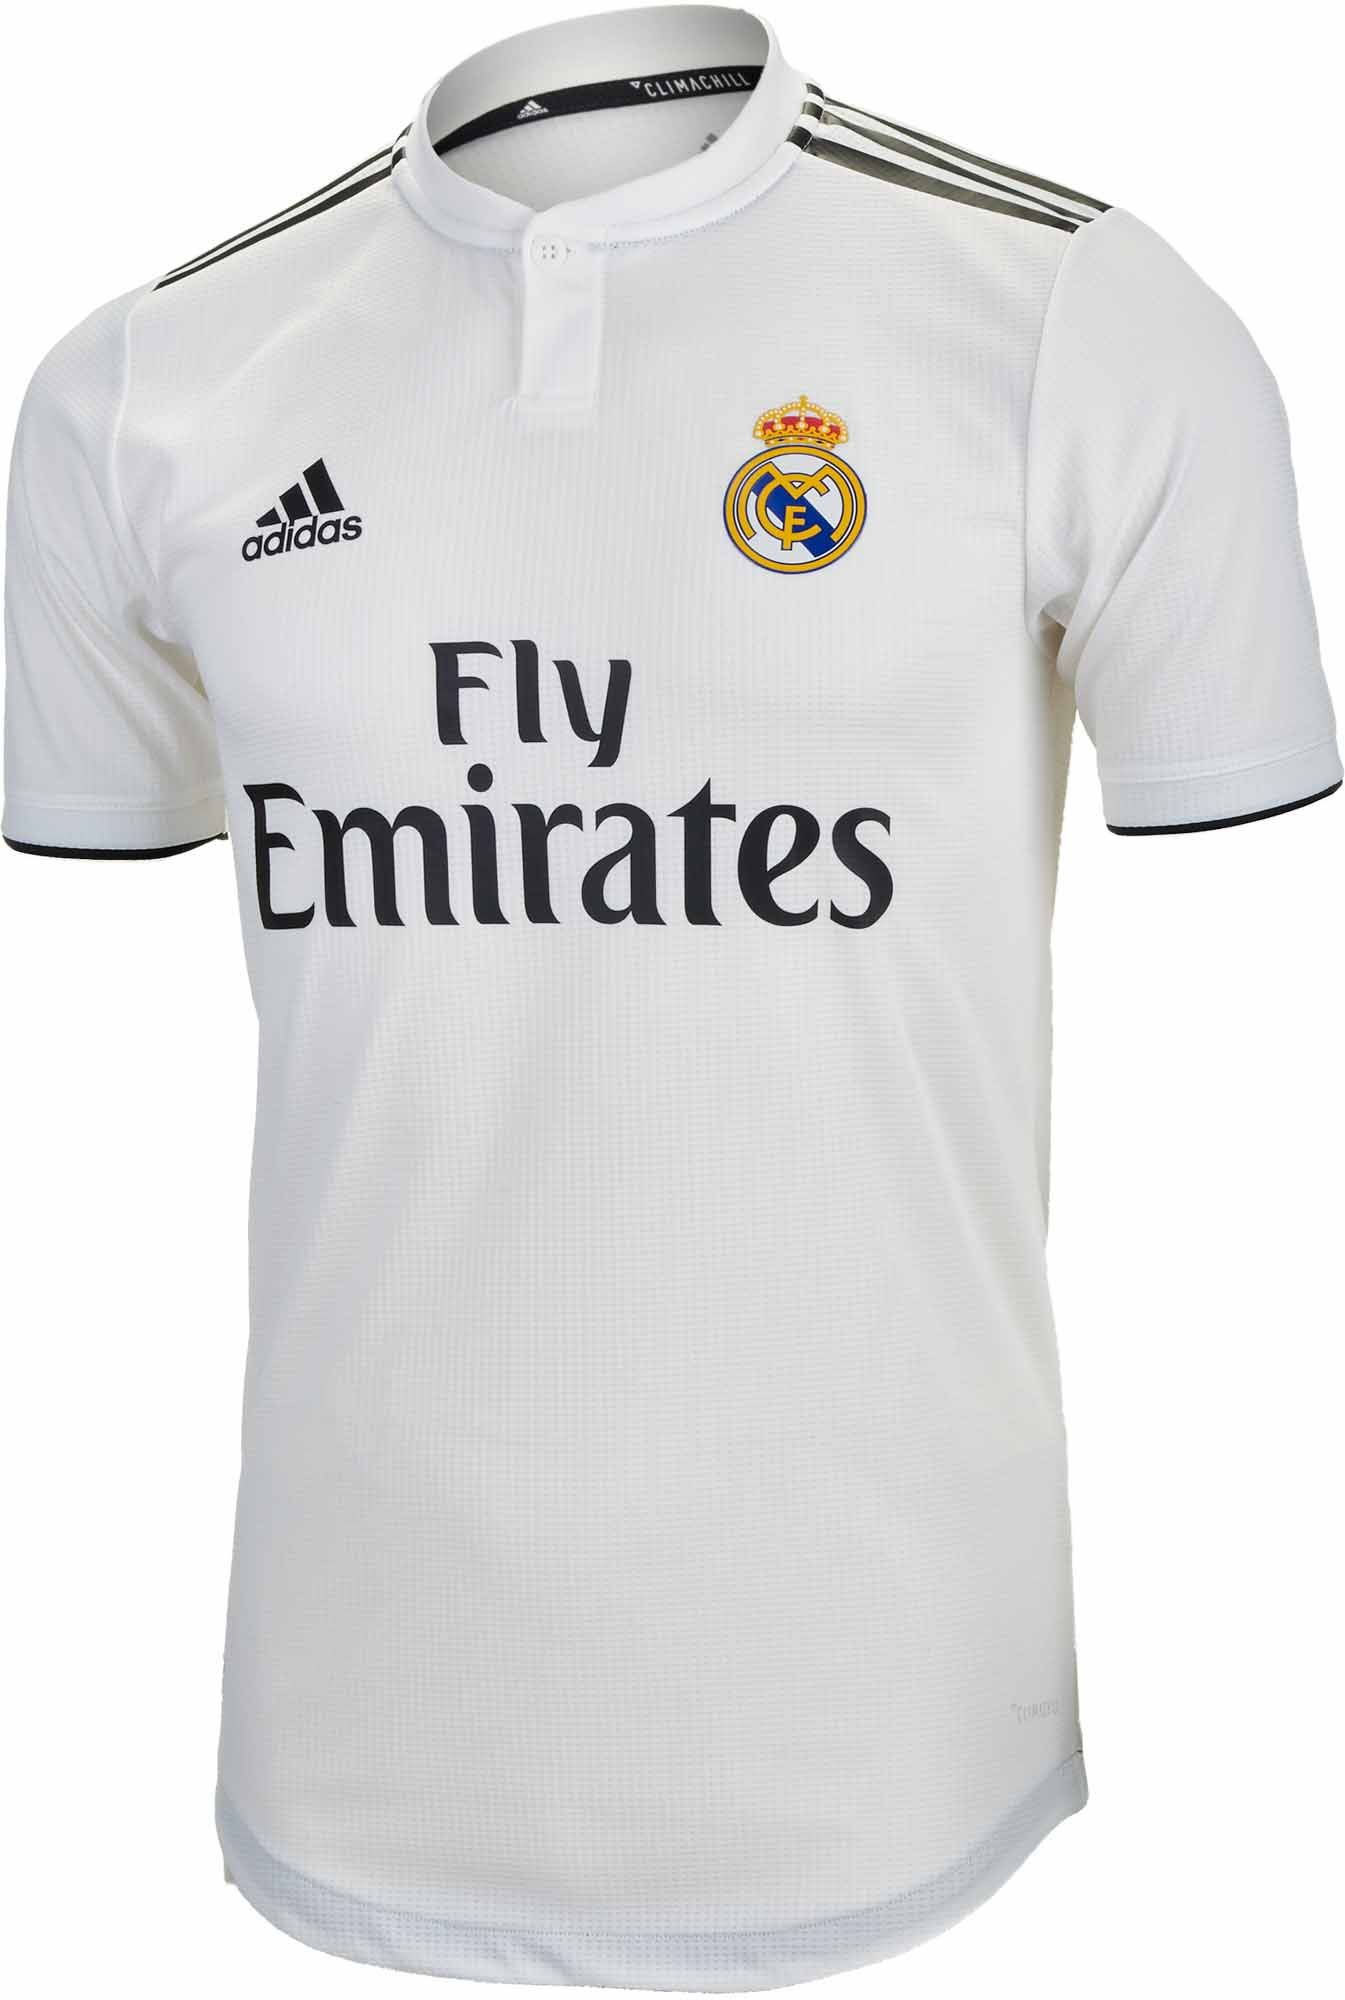 dc5b15a12 2018 19 adidas Real Madrid Authentic Home Jersey. Fresh at www.soccerpro.com